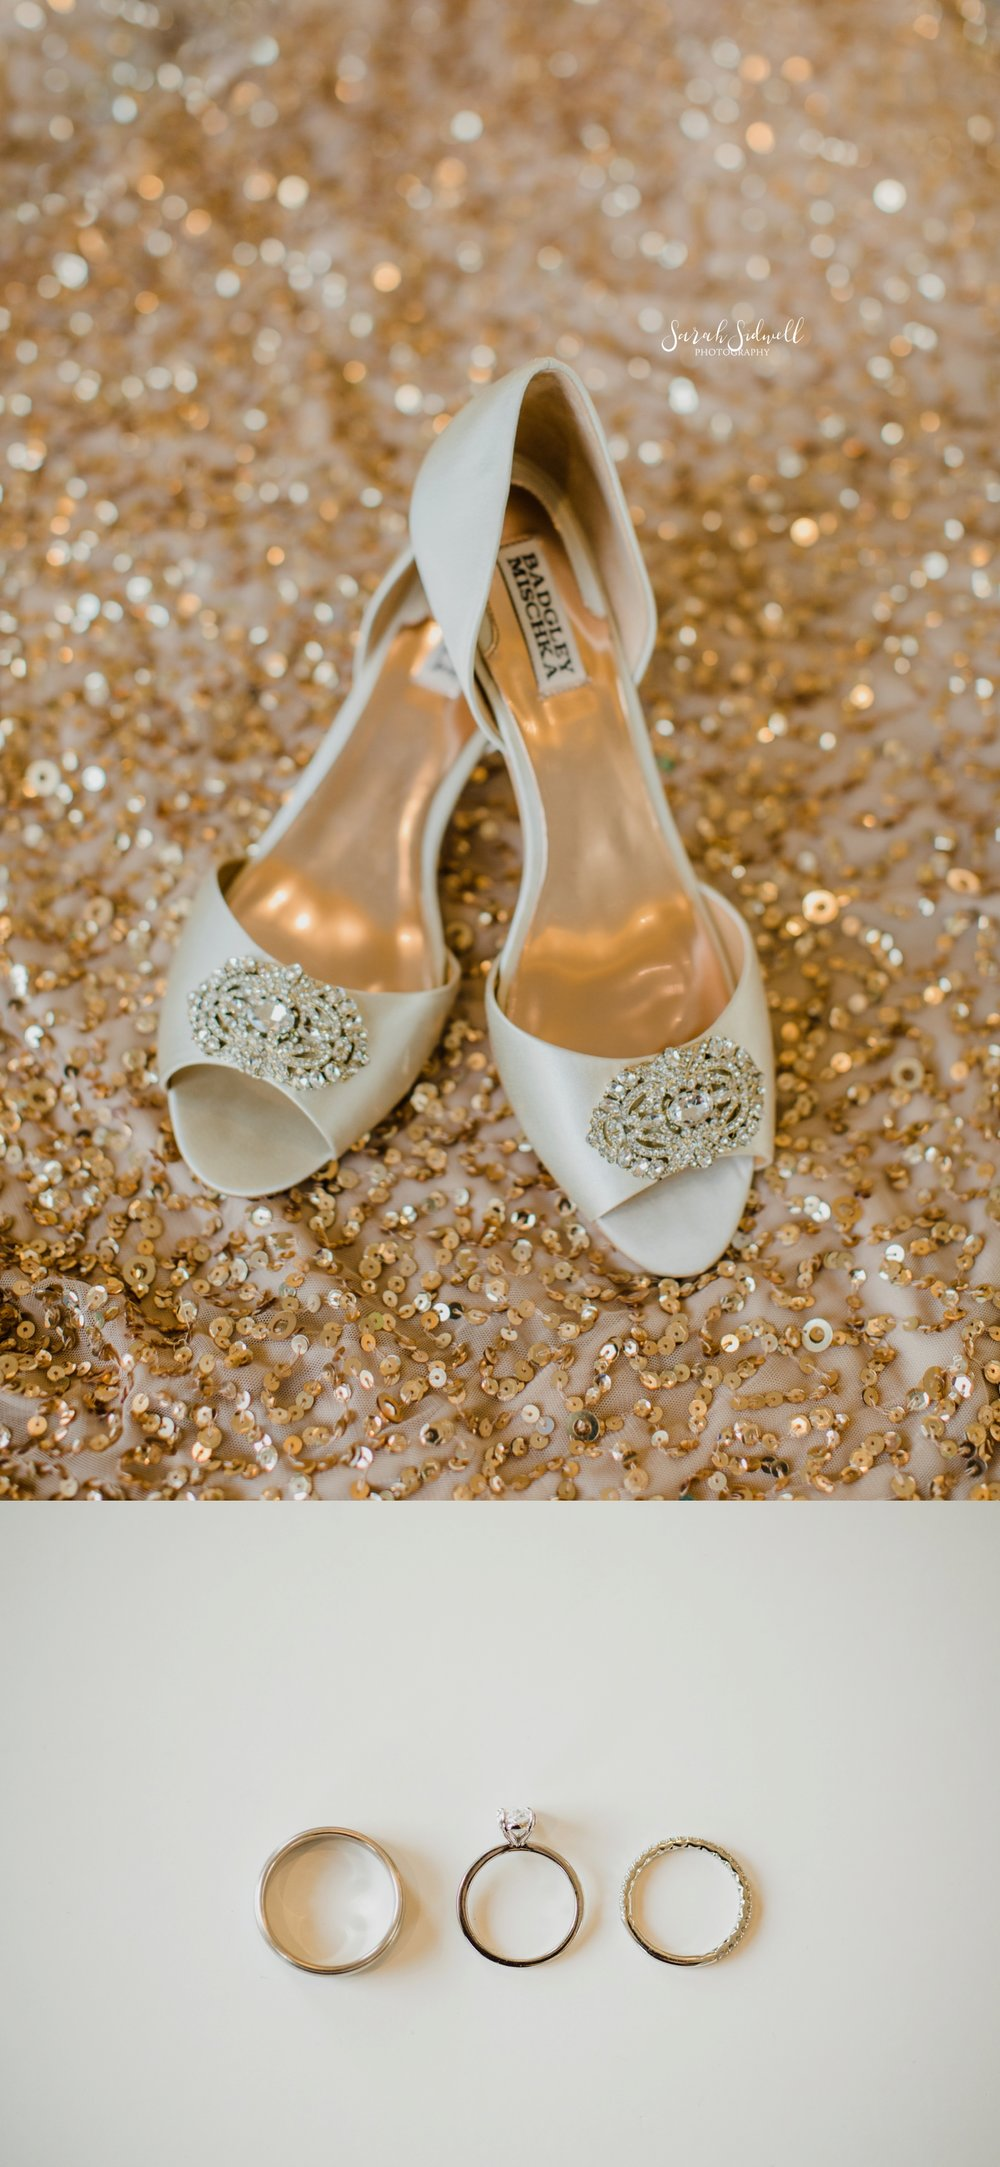 Wedding shoes are displayed | Sarah Sidwell Photography | The Bell Tower